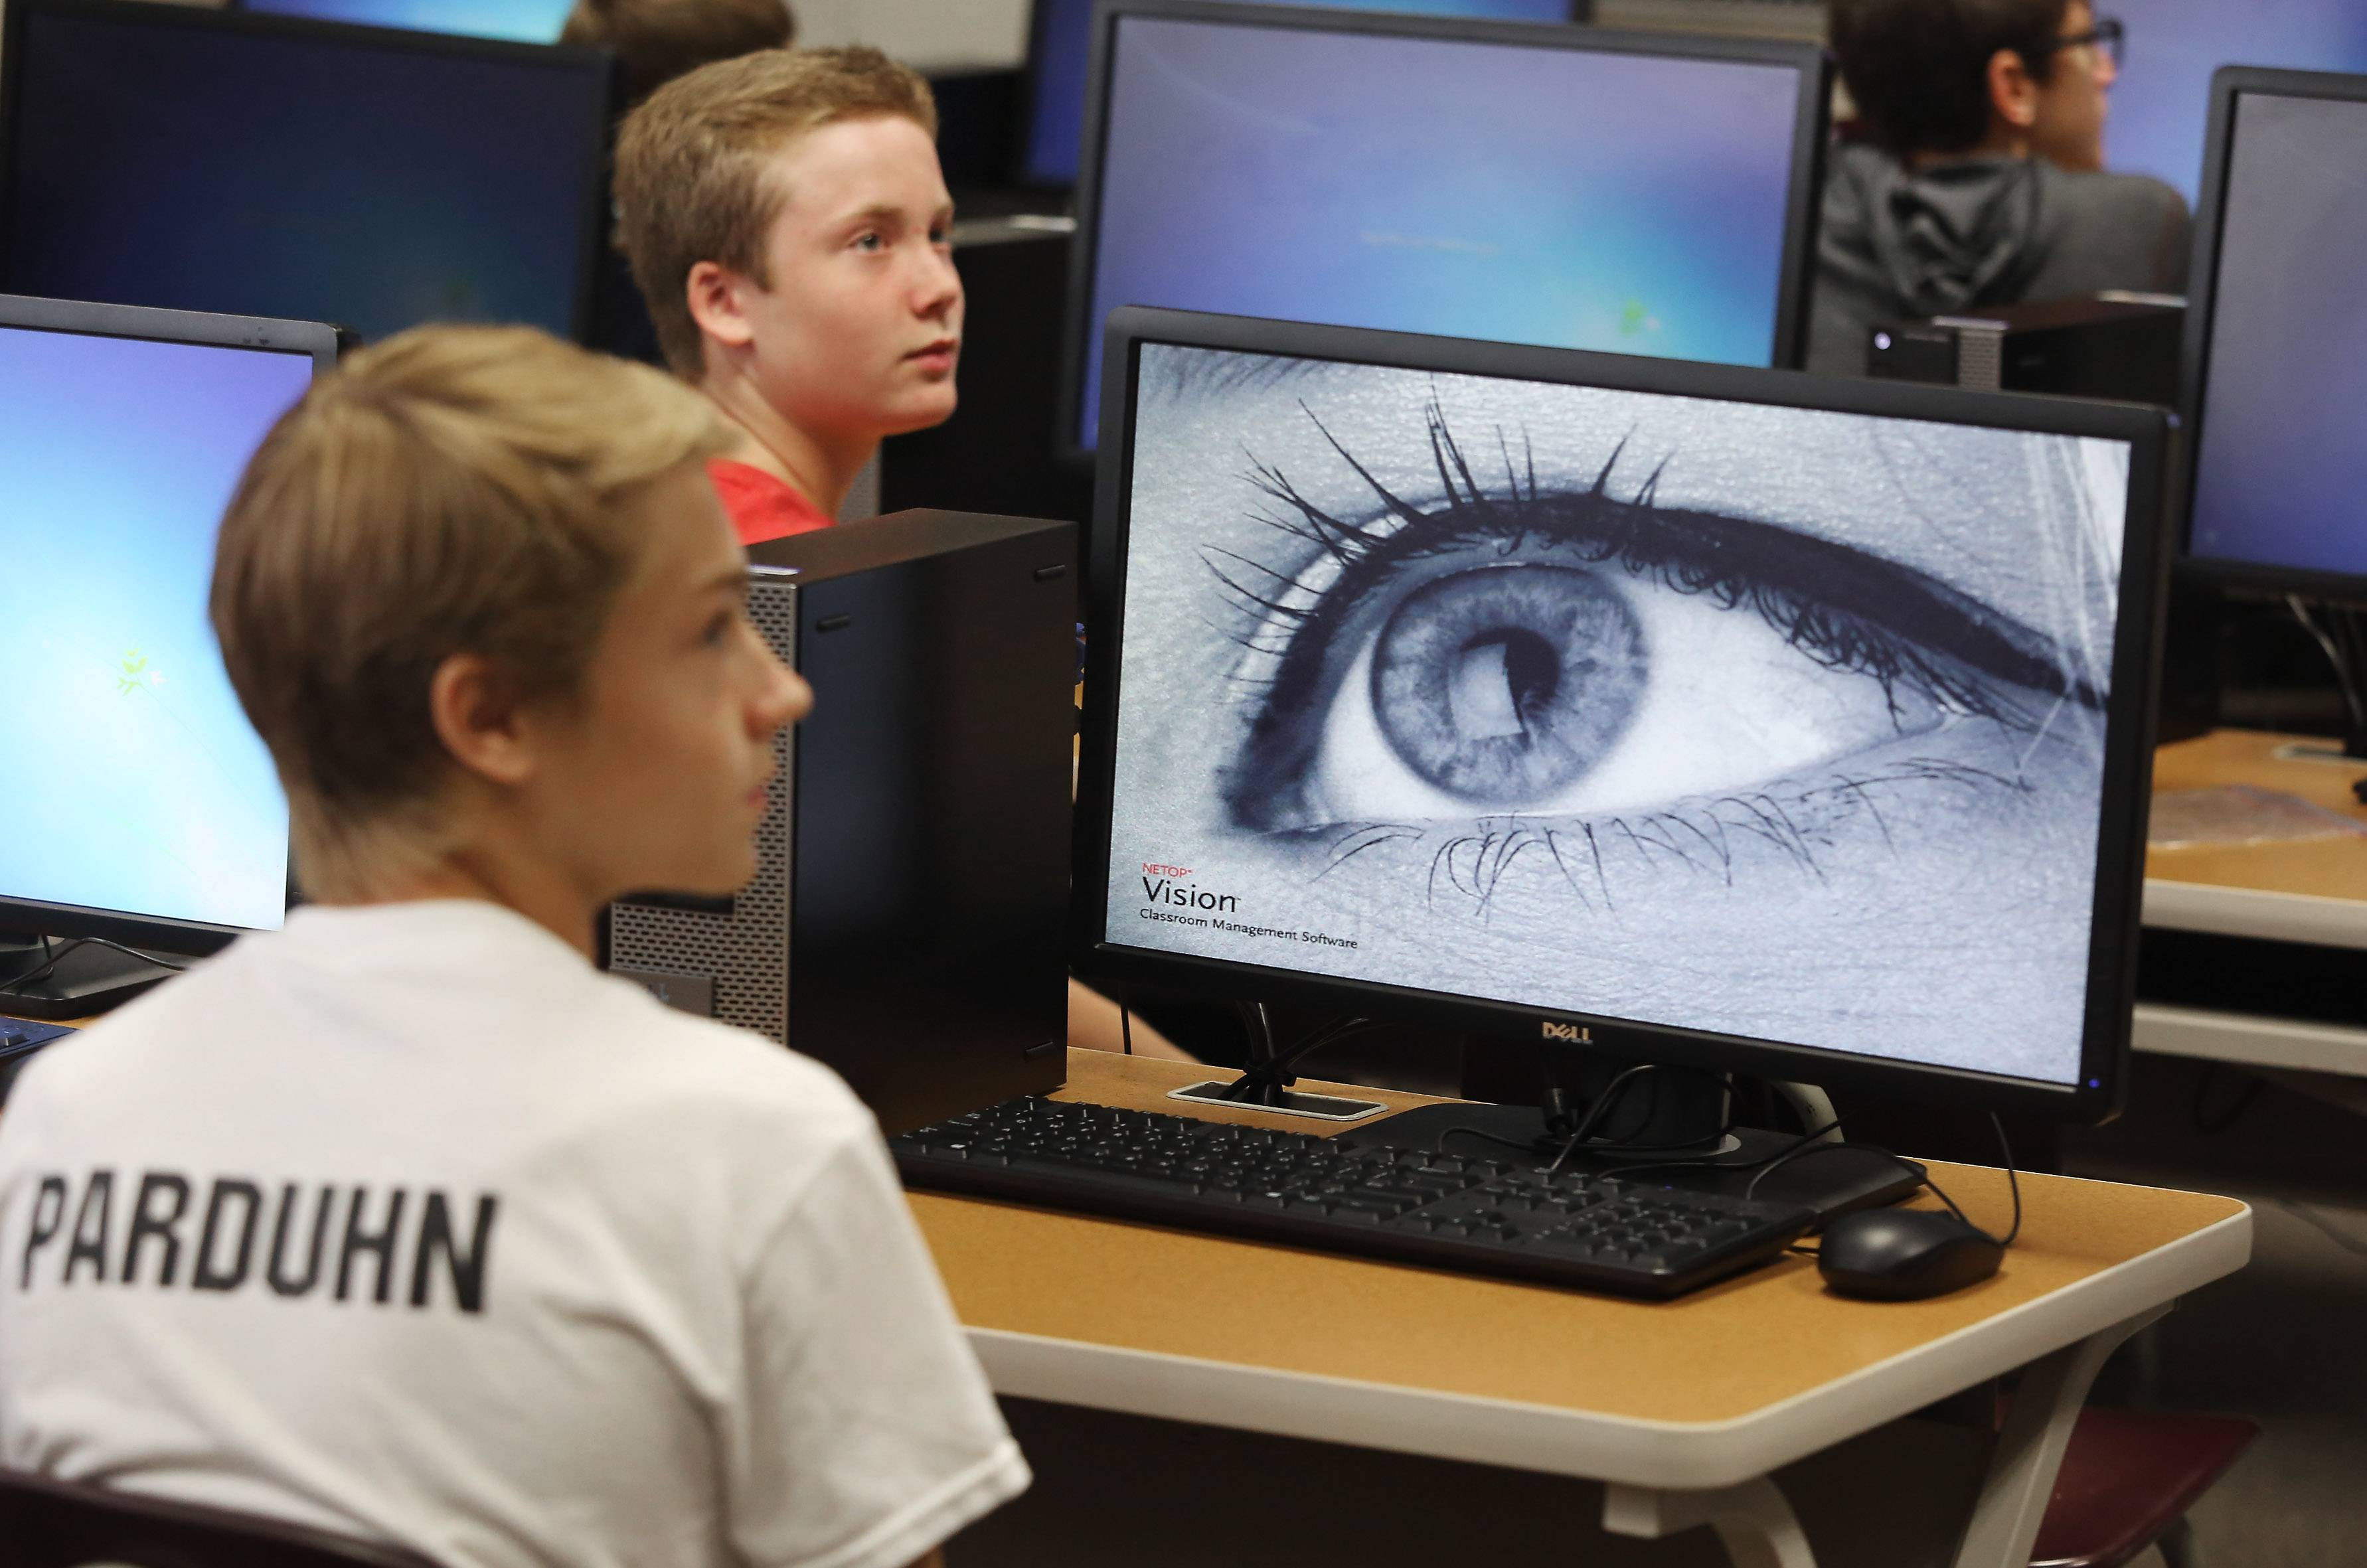 Freshman Michael Parduhn, left, listens to the teacher in computer applications class during the first day of school at Mundelein High School on Wednesday. The school is under construction and a new STEM wing is being built.